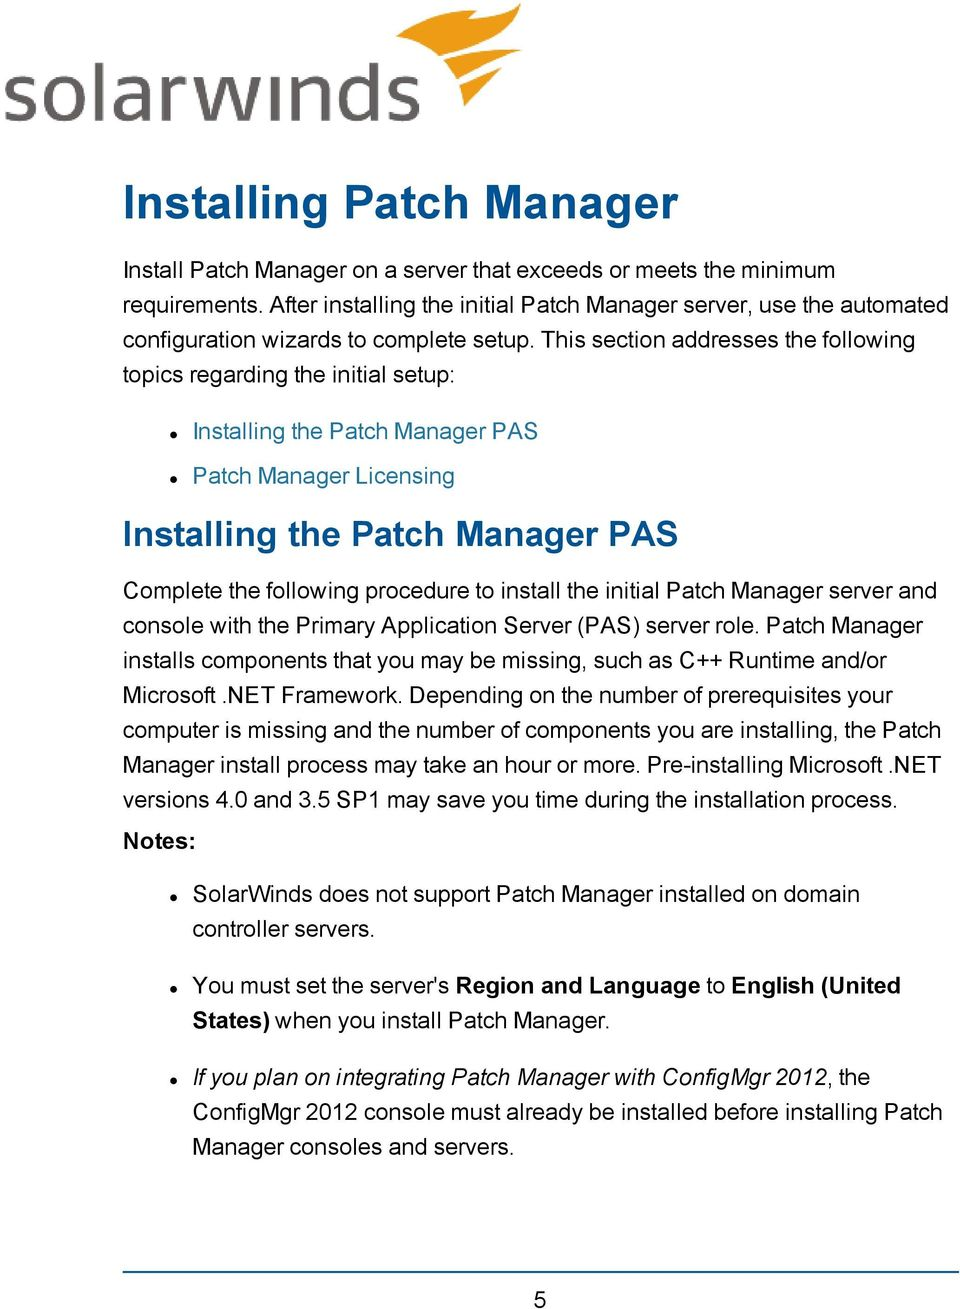 This section addresses the following topics regarding the initial setup: Installing the Patch Manager PAS Patch Manager Licensing Installing the Patch Manager PAS Complete the following procedure to